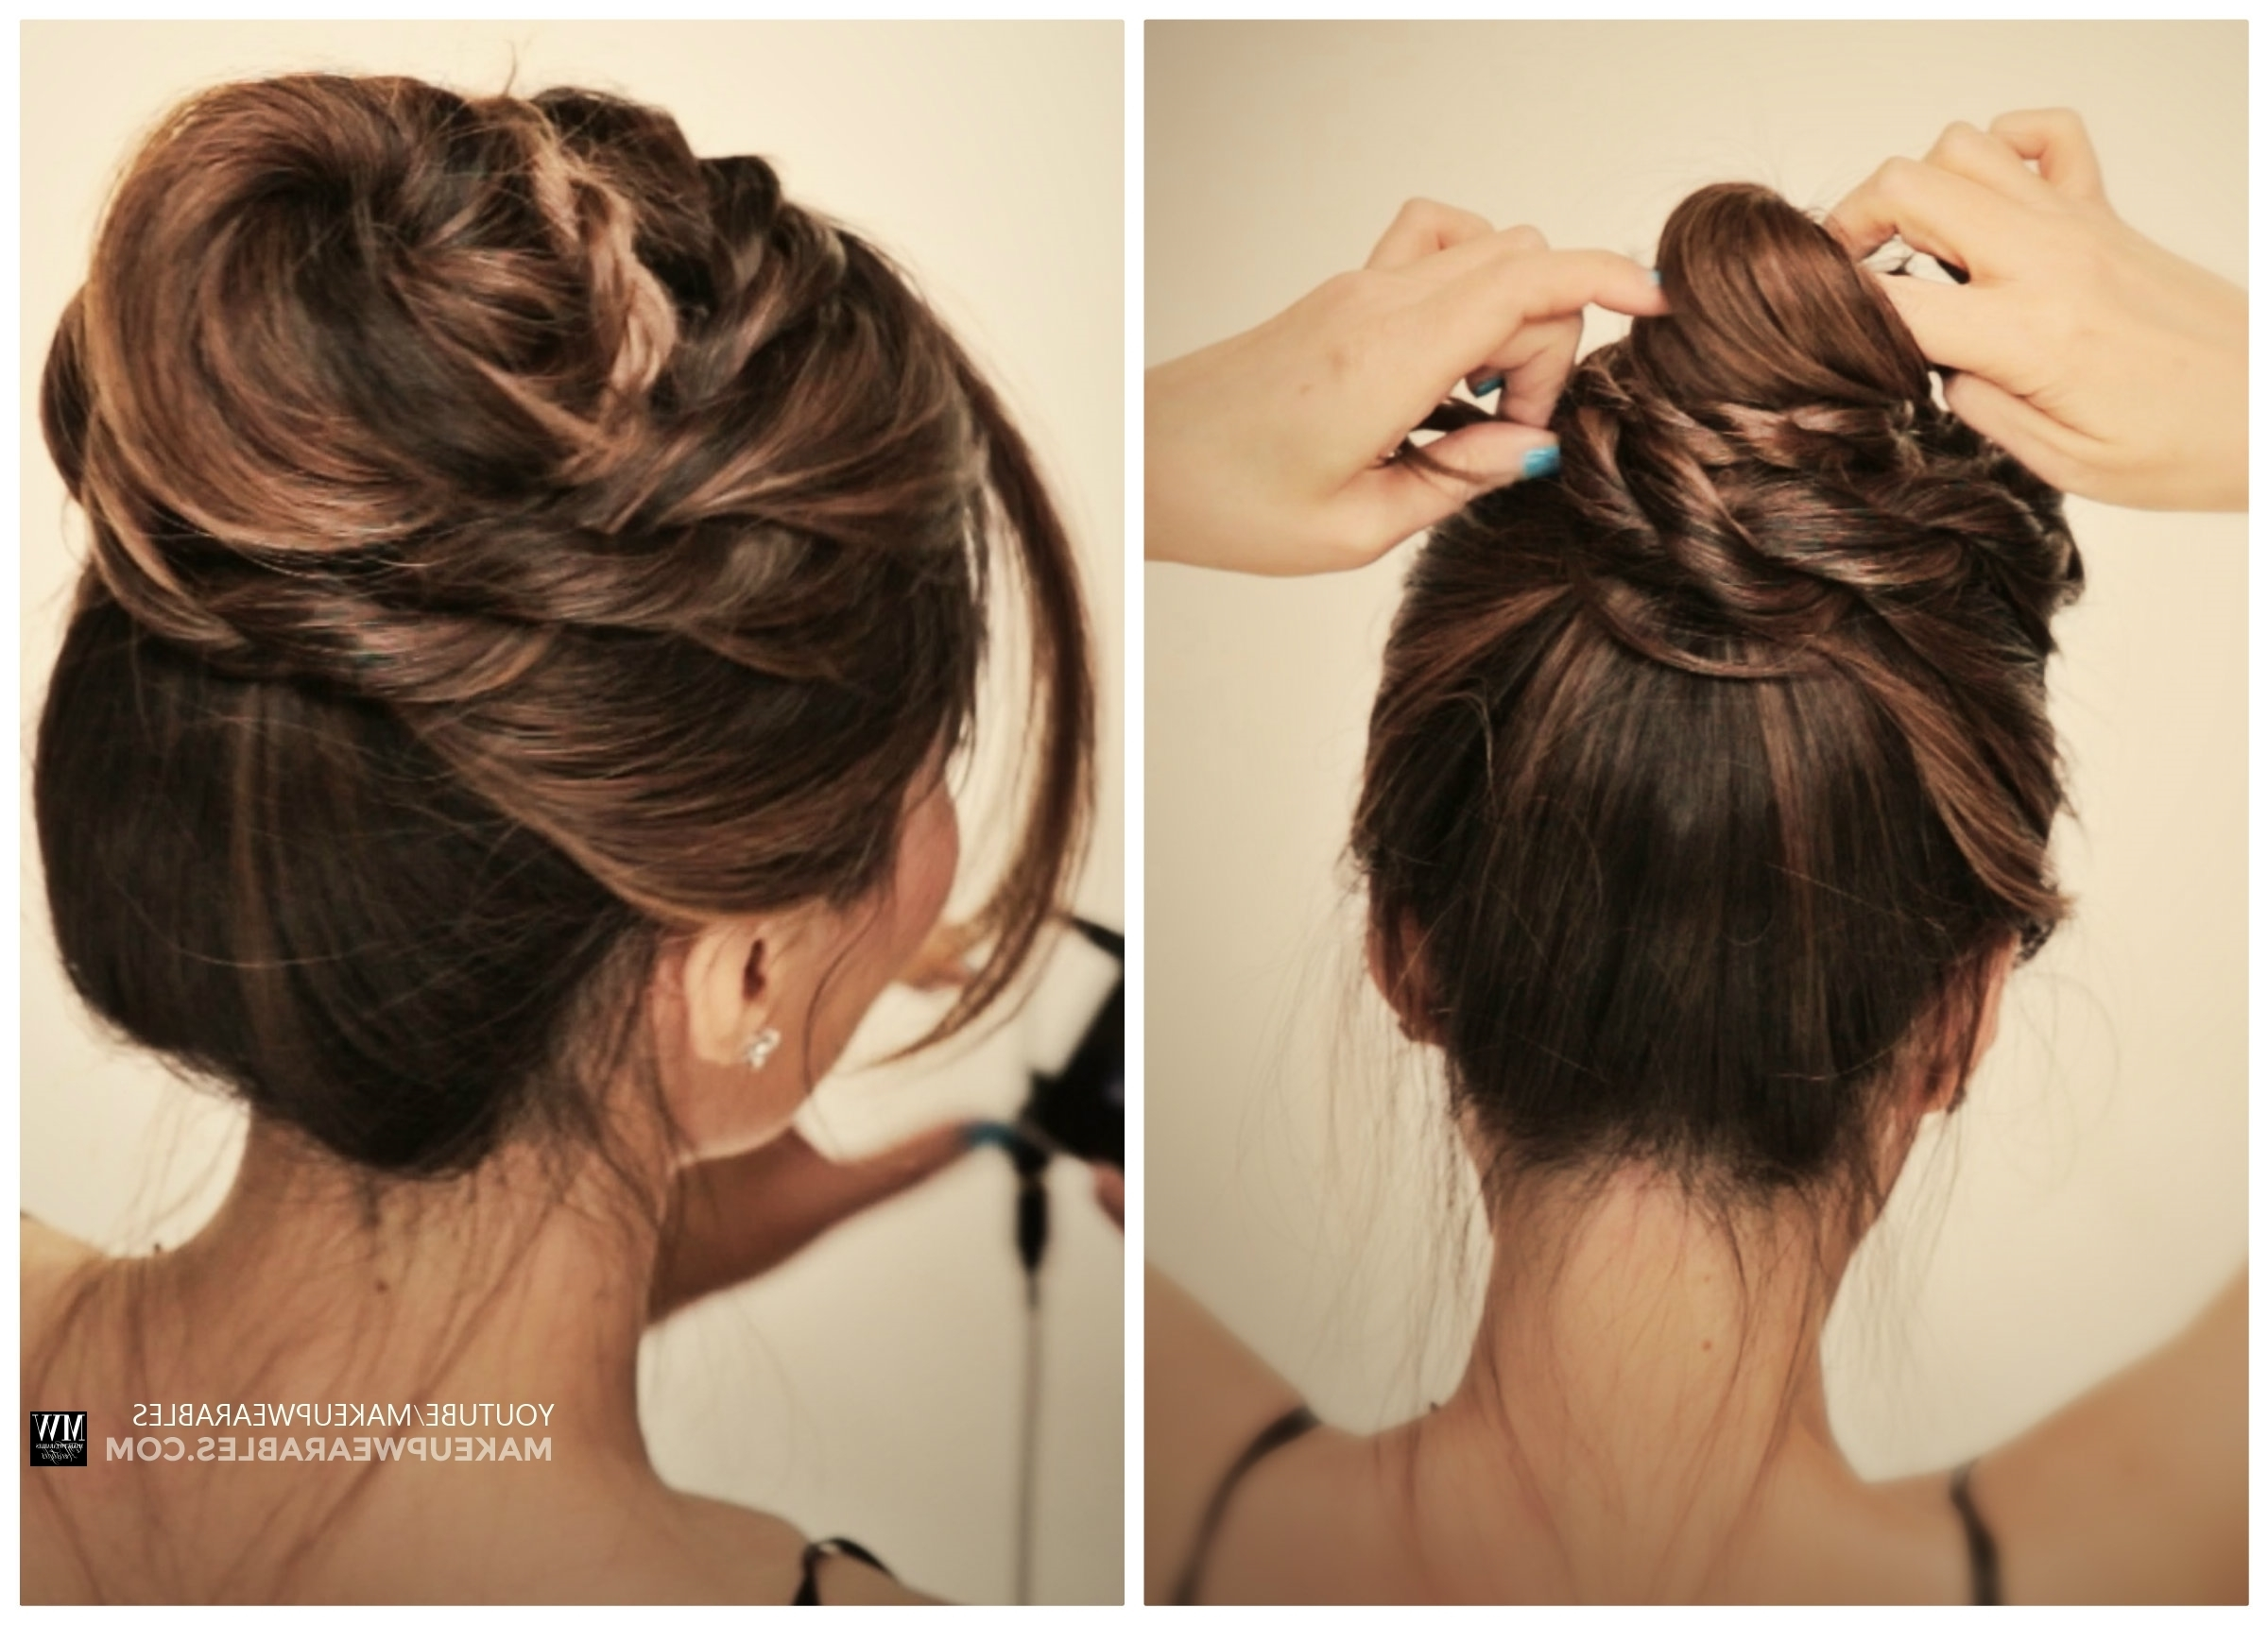 Cute Messy Bun Braids Ballerina Twisted Updo Hairstyle | Medium Hair With Regard To Cute Bun Updo Hairstyles (View 6 of 15)